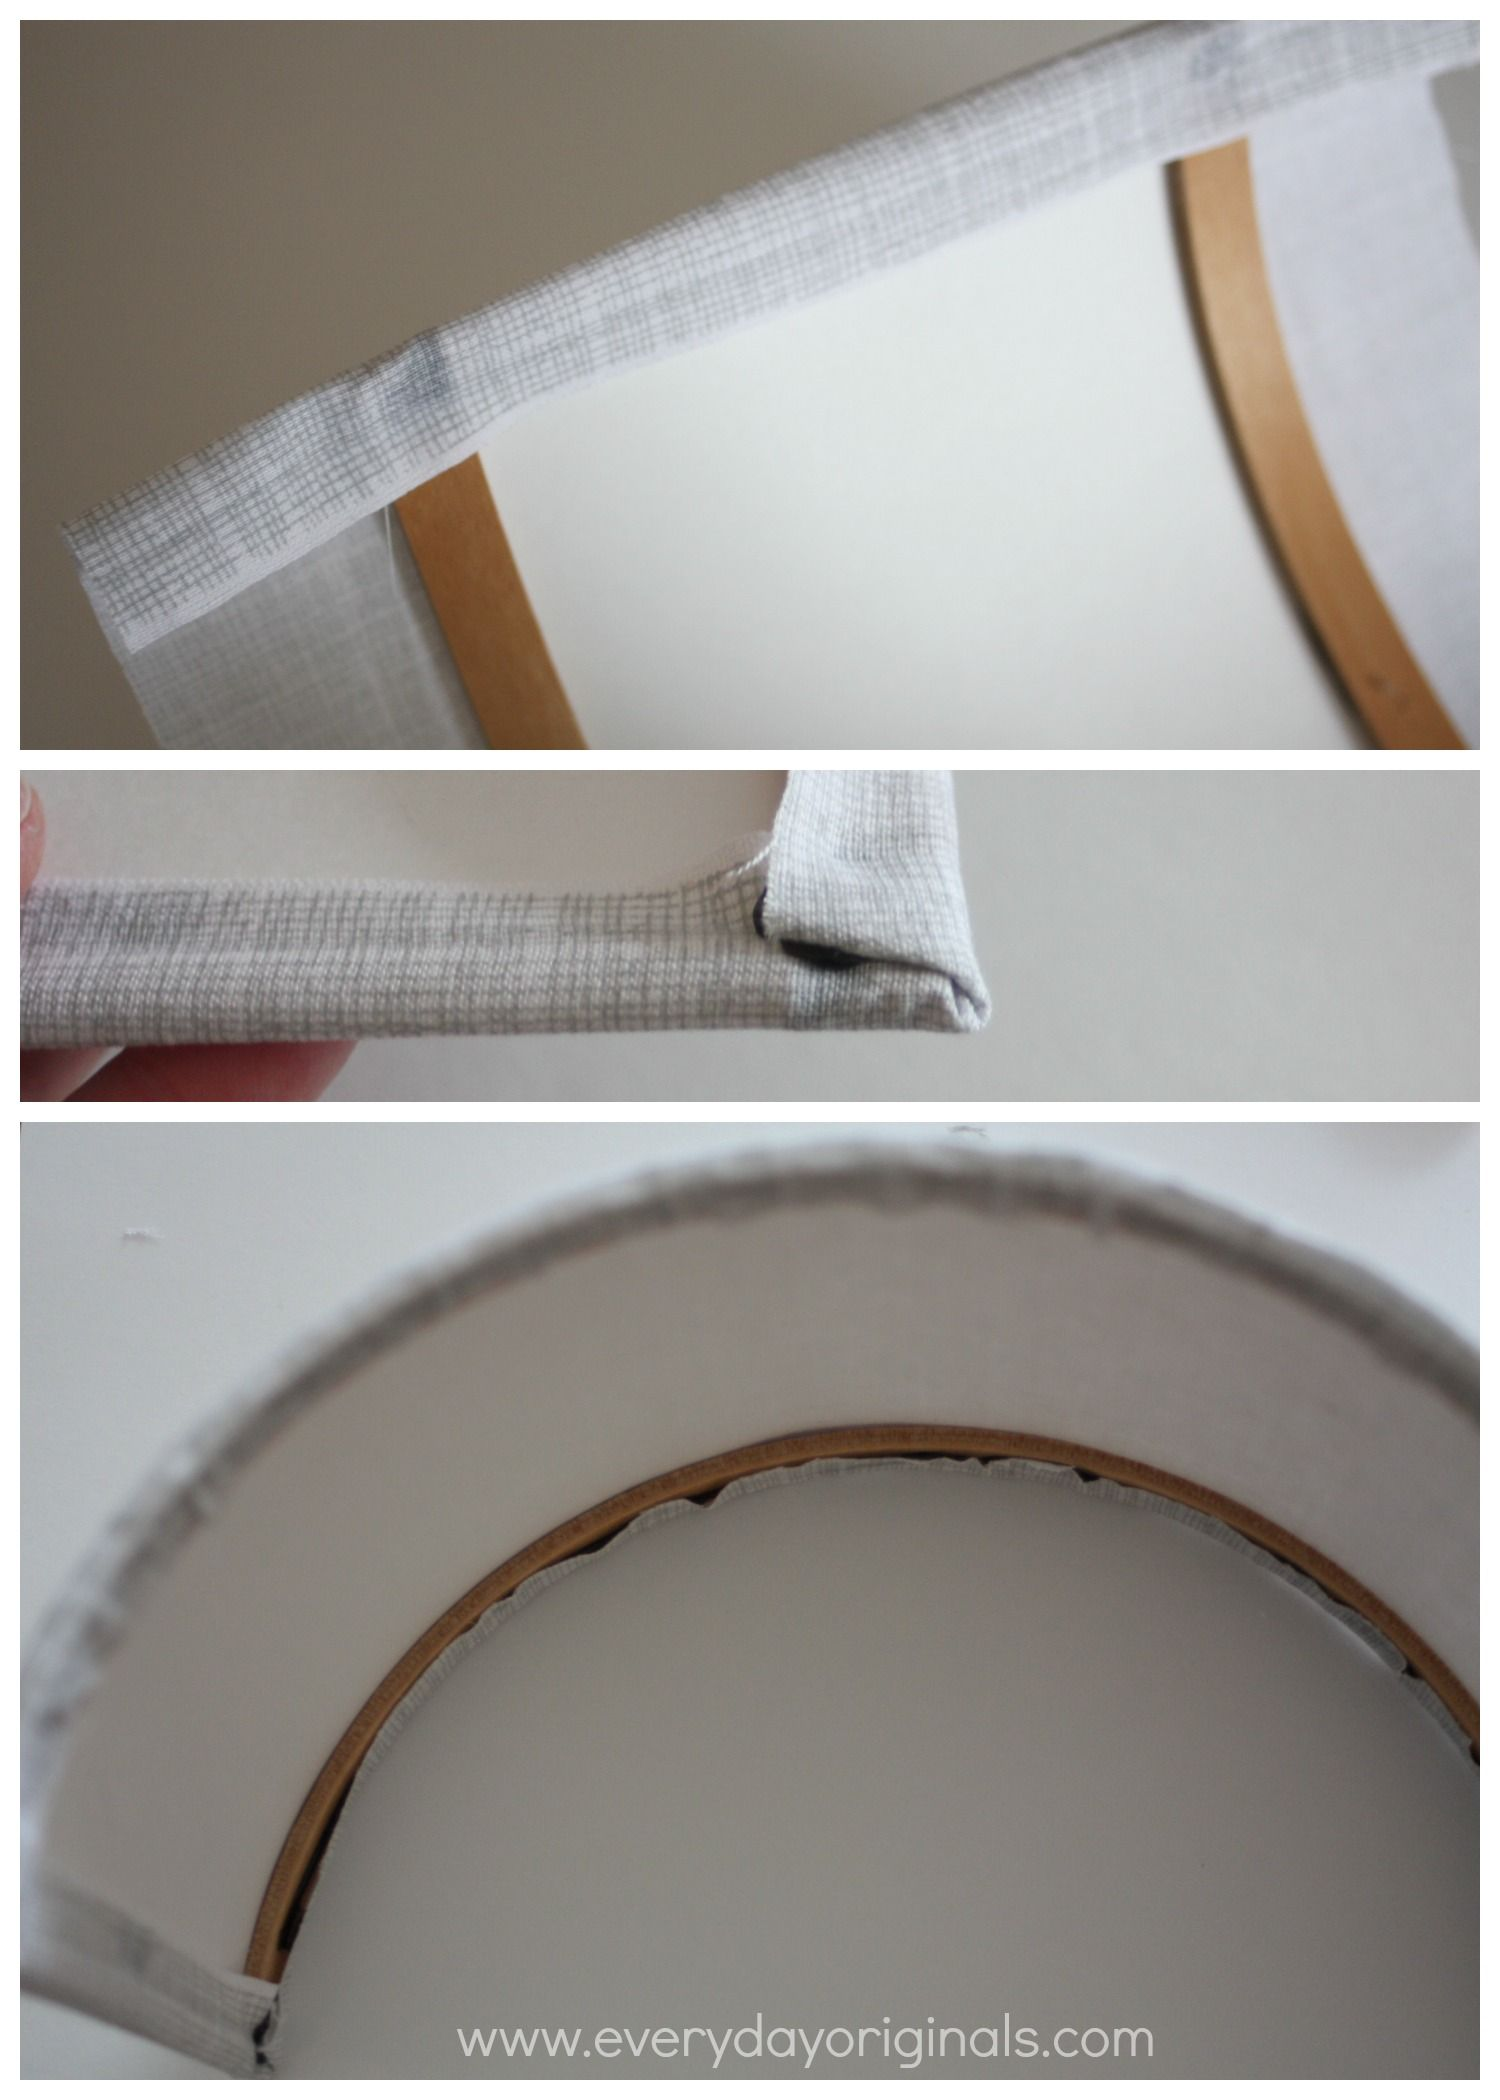 Super Simple Diy Wall Sconce Shades Sconce Shades Wall Sconce Shade Lamp Shade Frame Wall sconce lamp shade